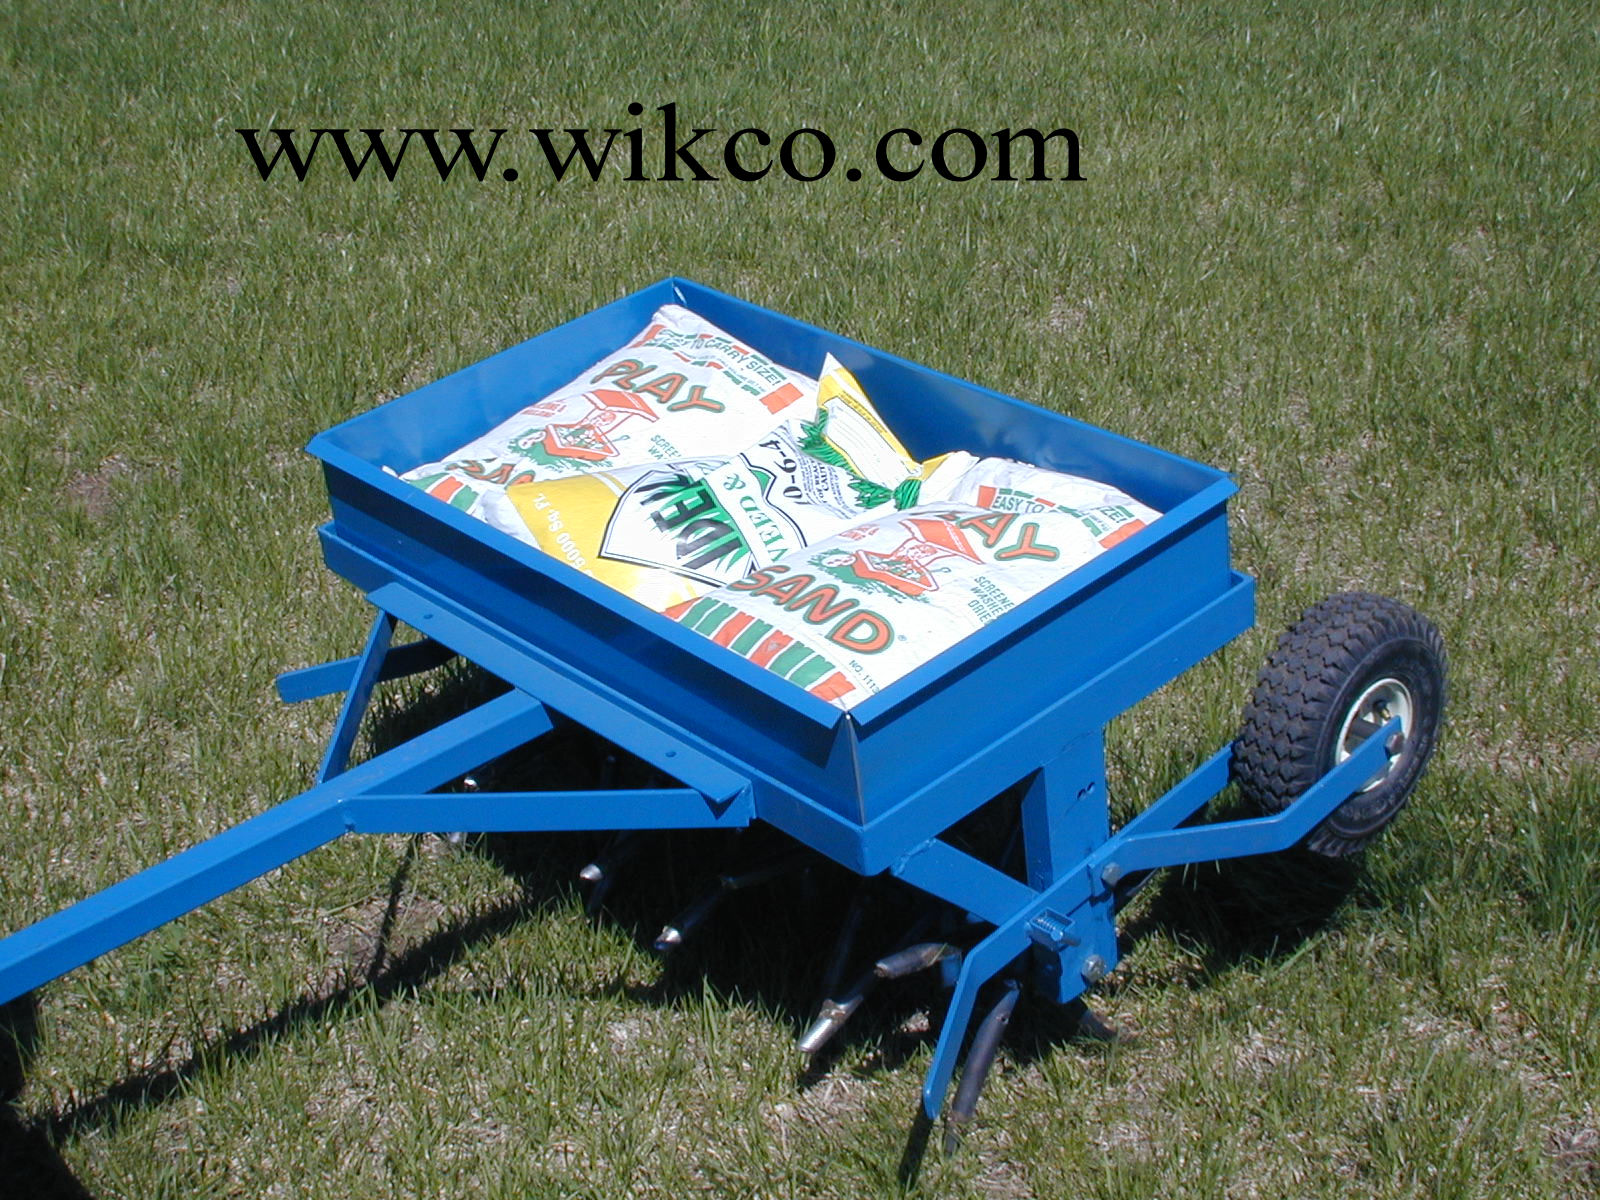 Wikco 30 Inch Wide Tow Behind Core Plug Aerator